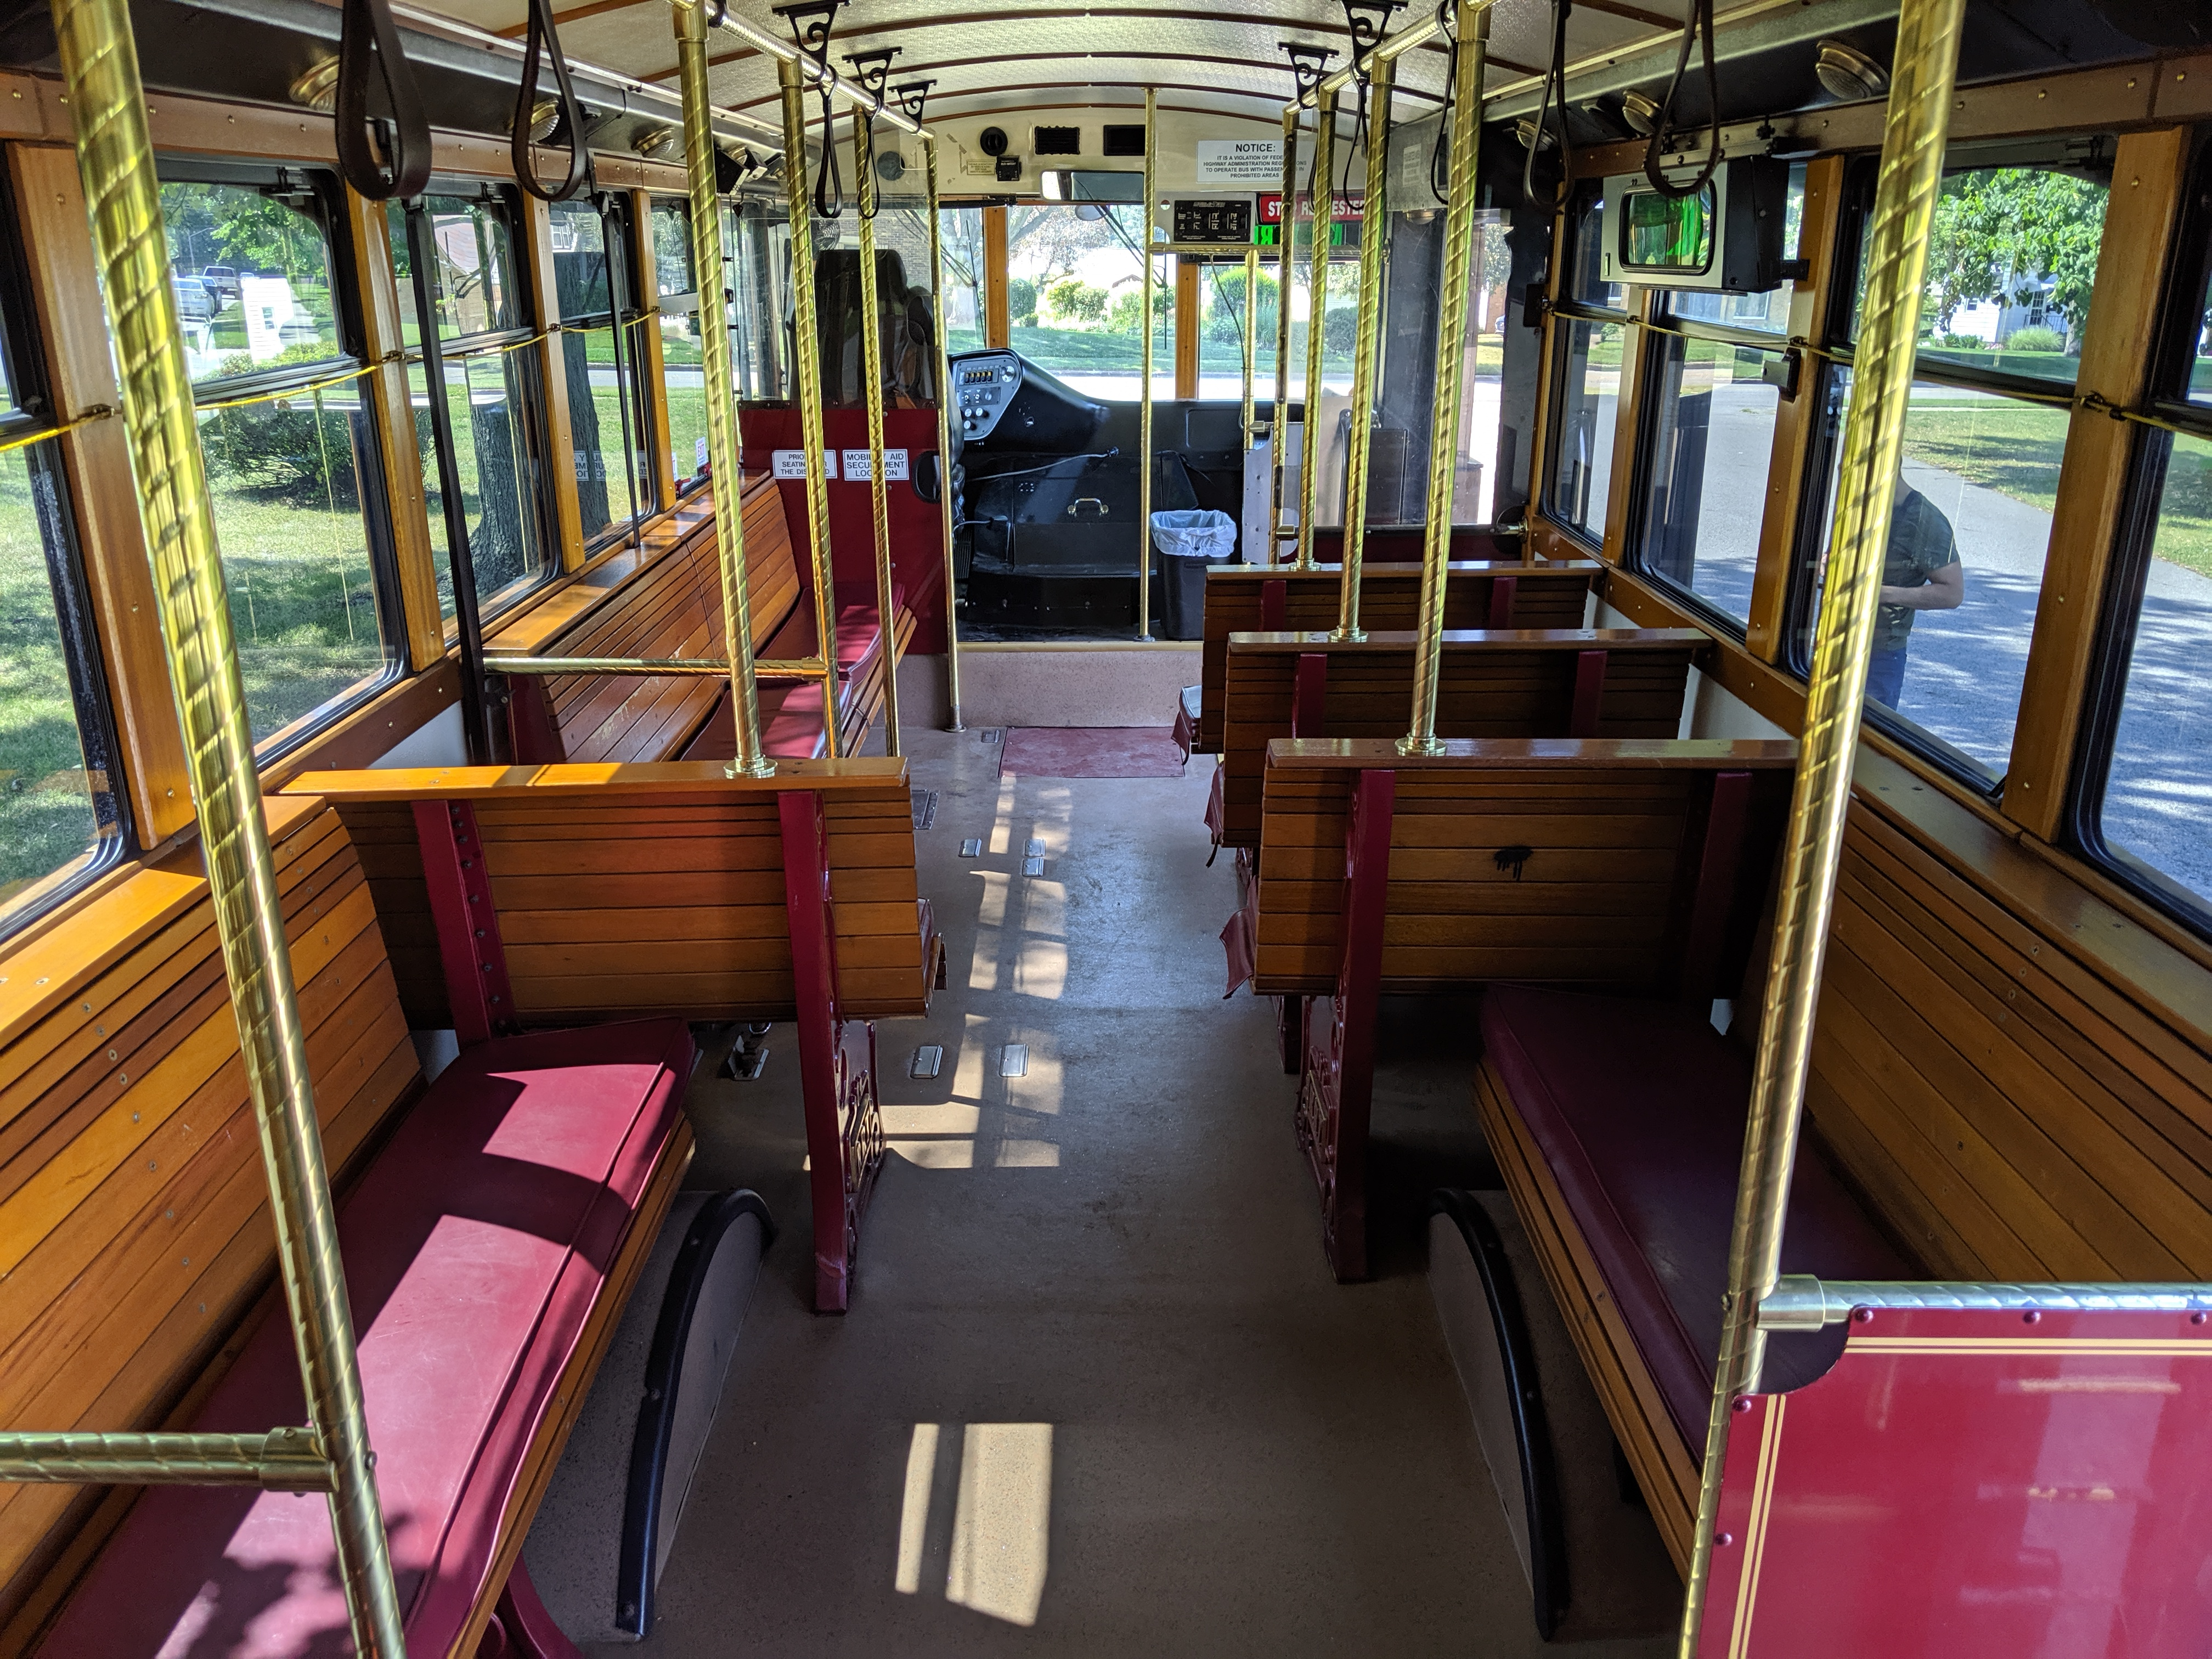 27 Passenger Trolley #27-3 Interior 4